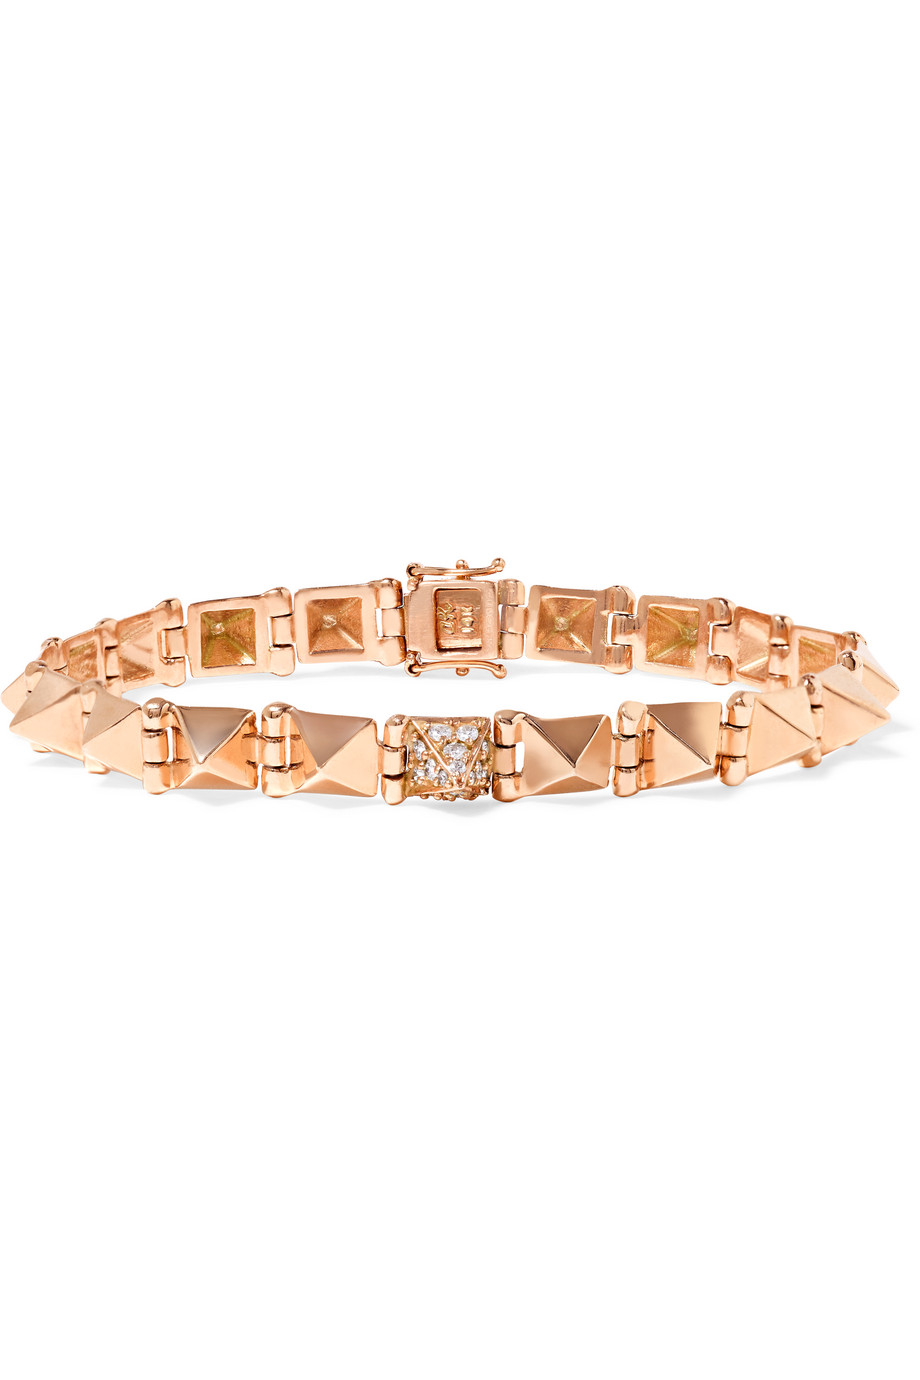 Anita Ko Spike 14-Karat Rose Gold Diamond Bracelet, Women's